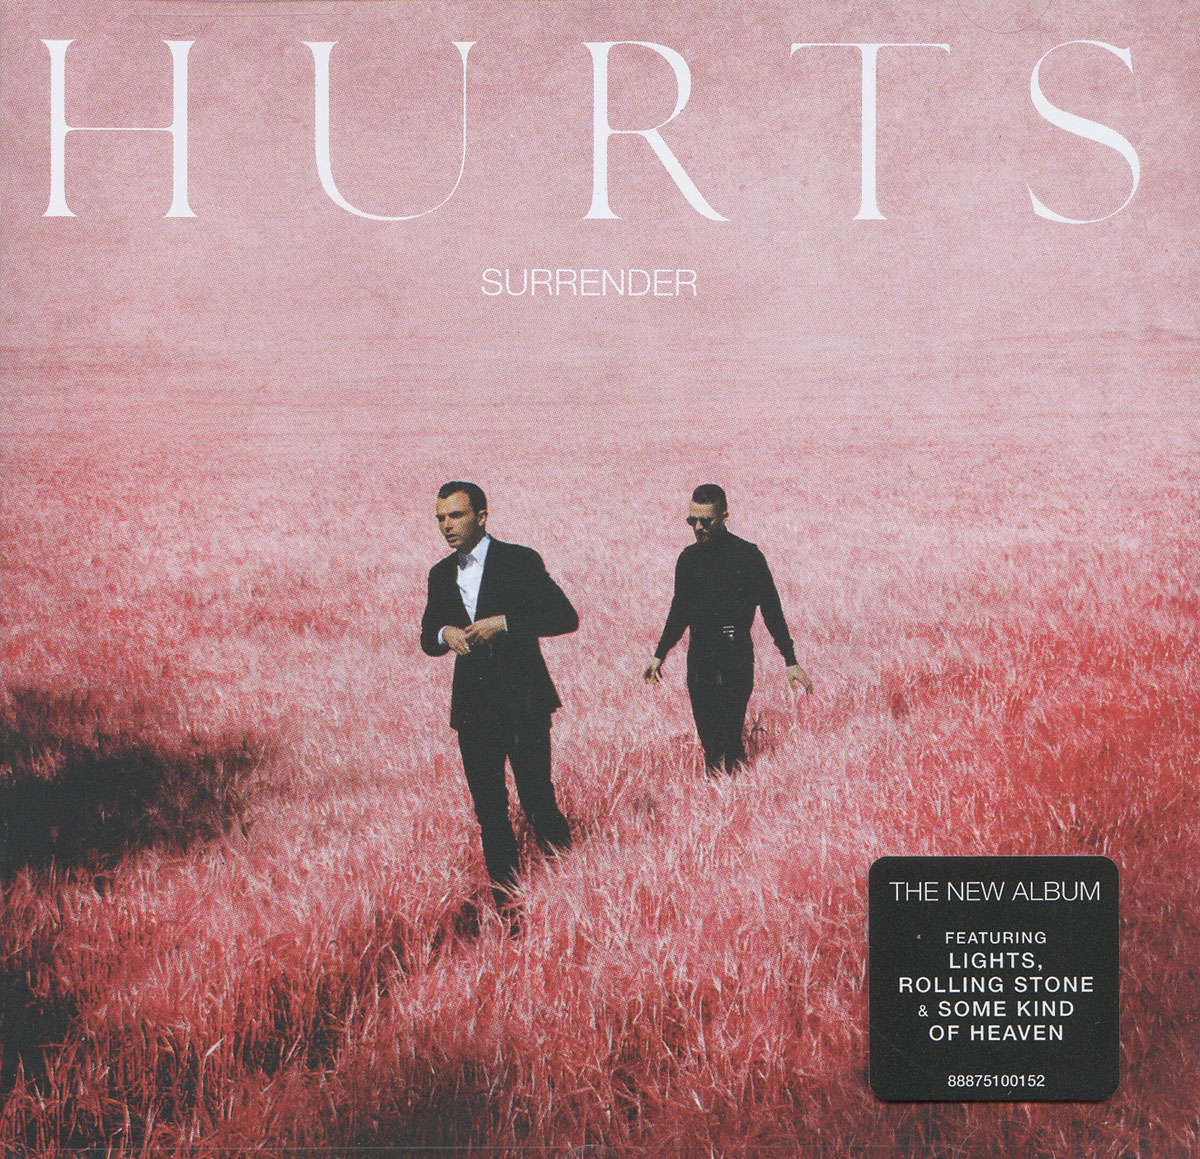 Hurts. Surrender